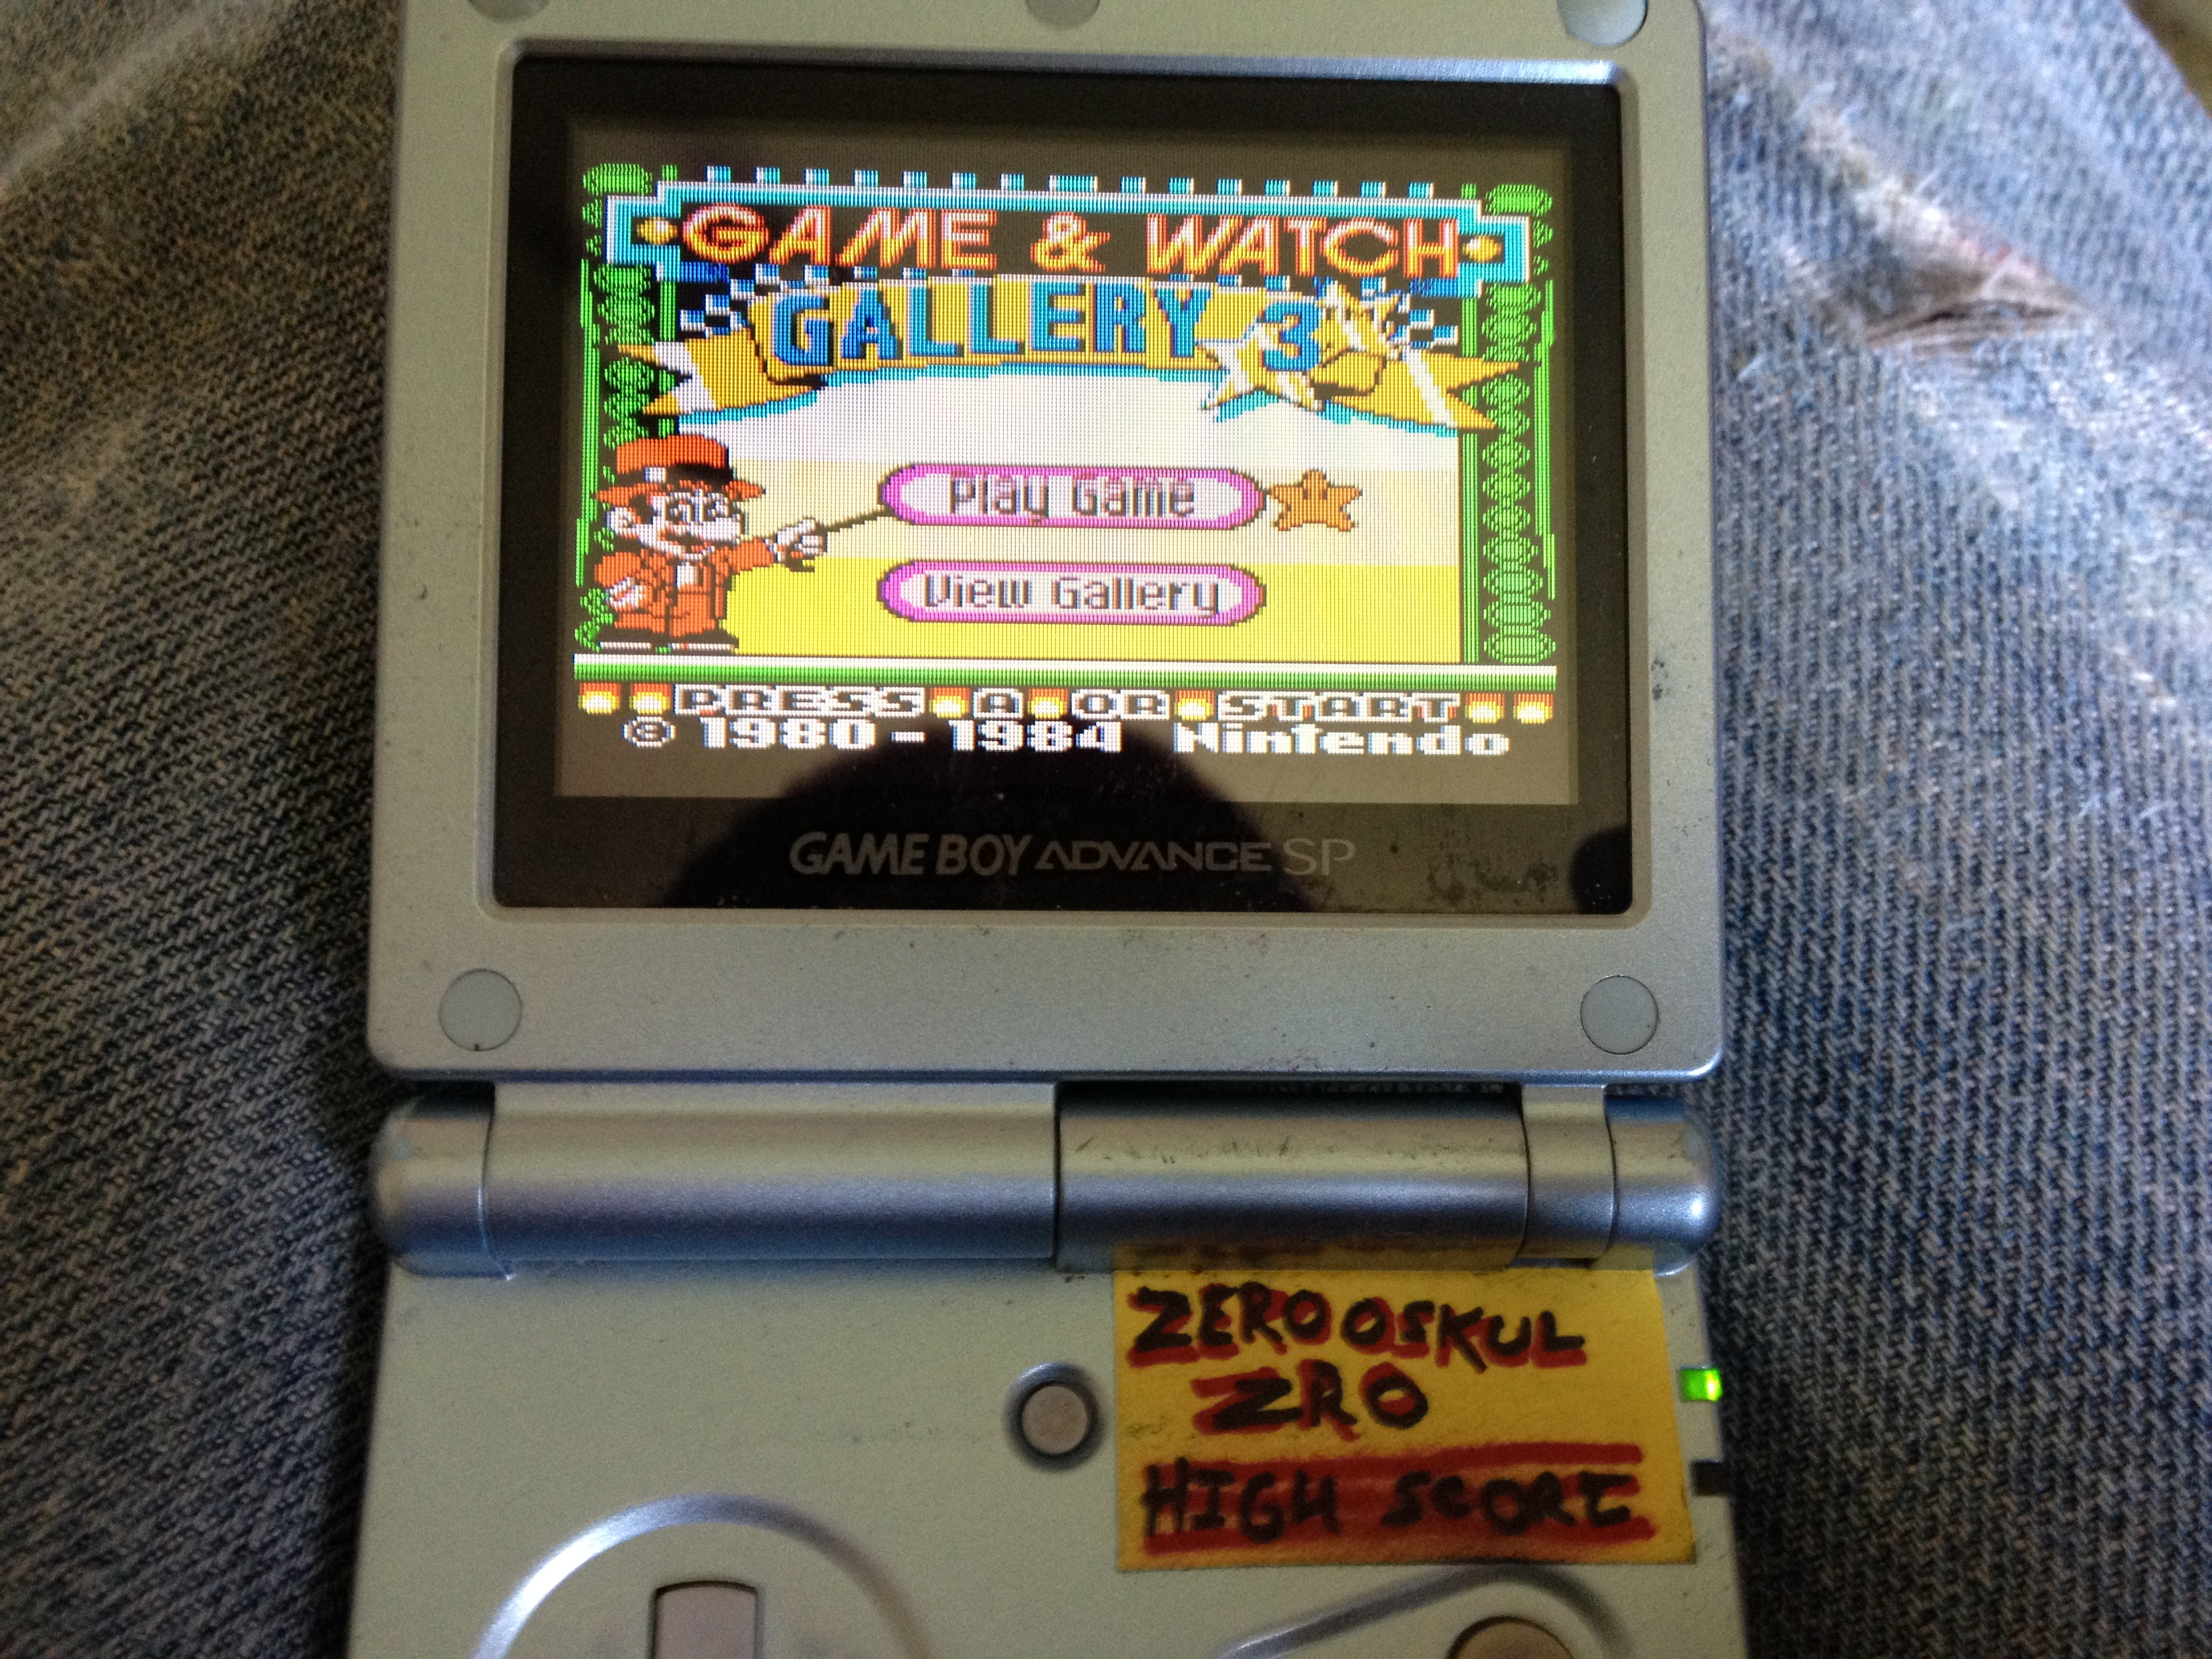 zerooskul: Game & Watch Gallery 3: Lion [Classic: Hard] (Game Boy Color) 436 points on 2019-05-02 12:56:32